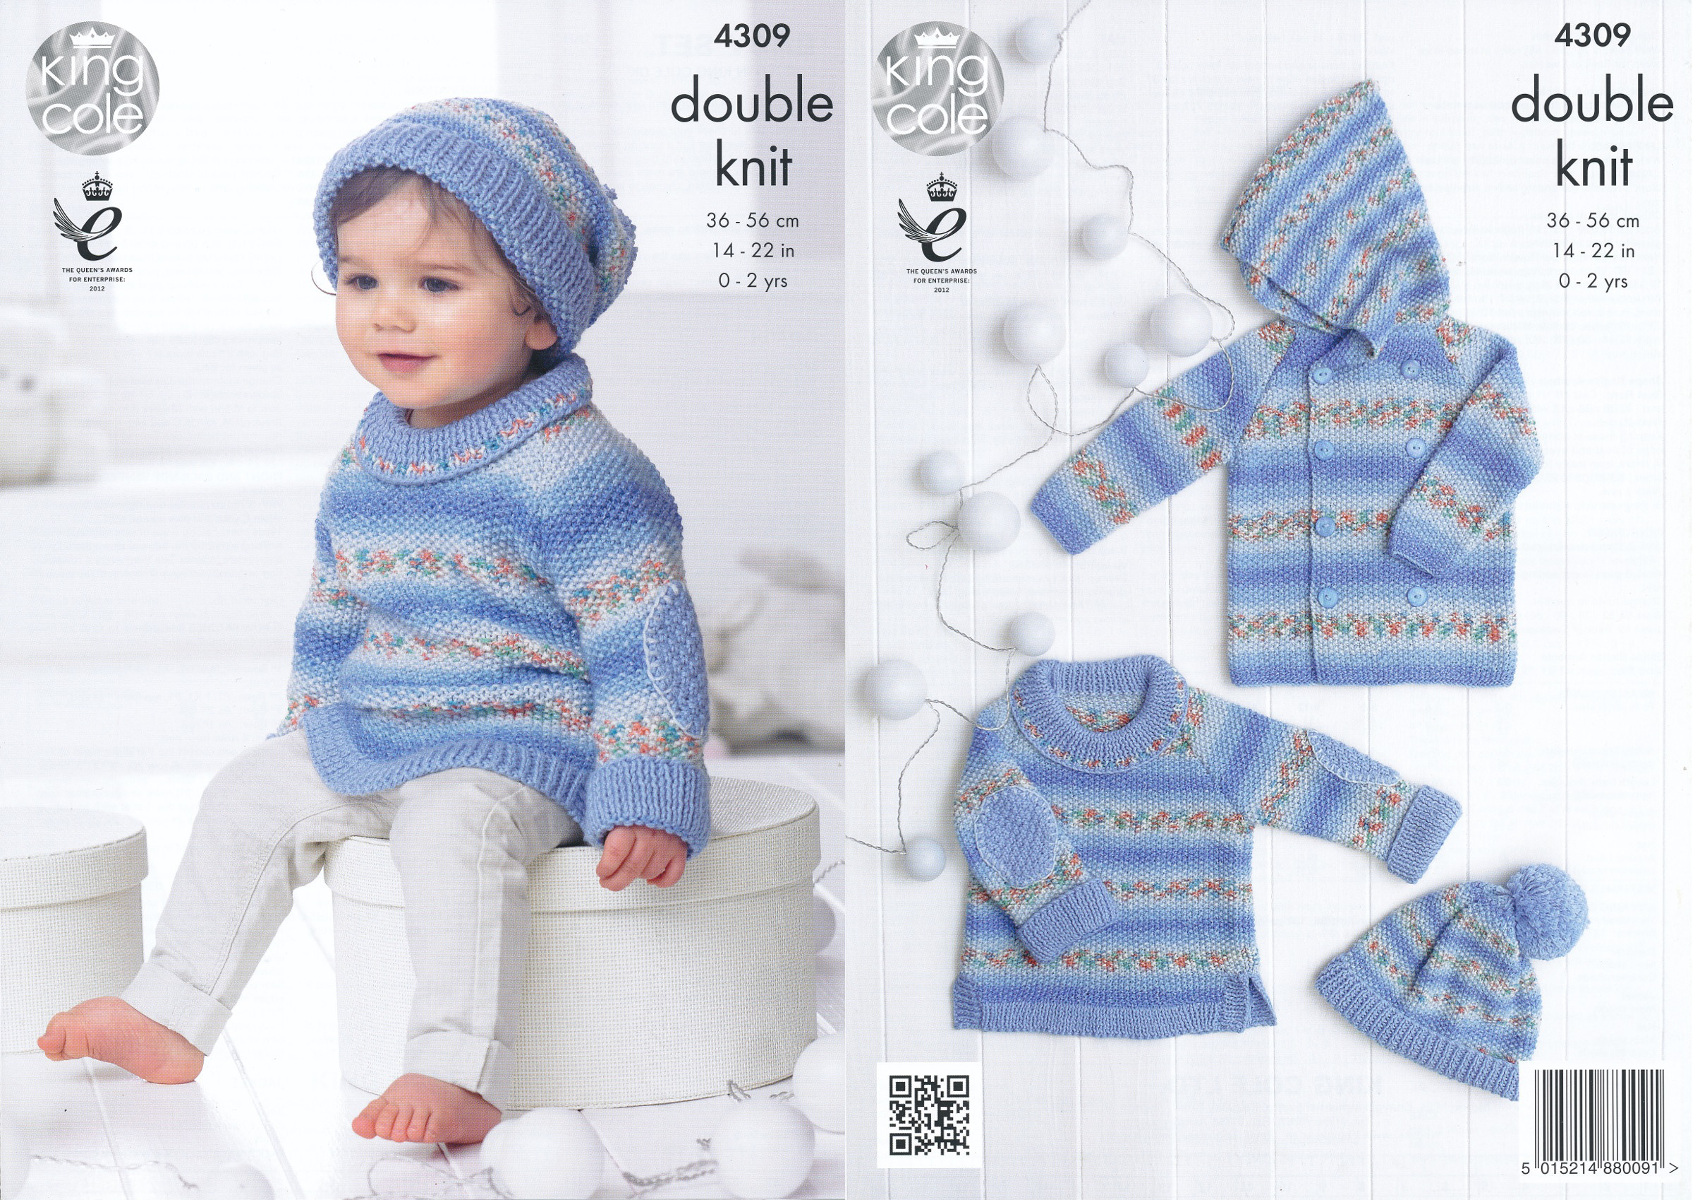 Knitting Pattern King Cole : Baby Drifter DK Knitting Pattern King Cole Sweater Jumper ...